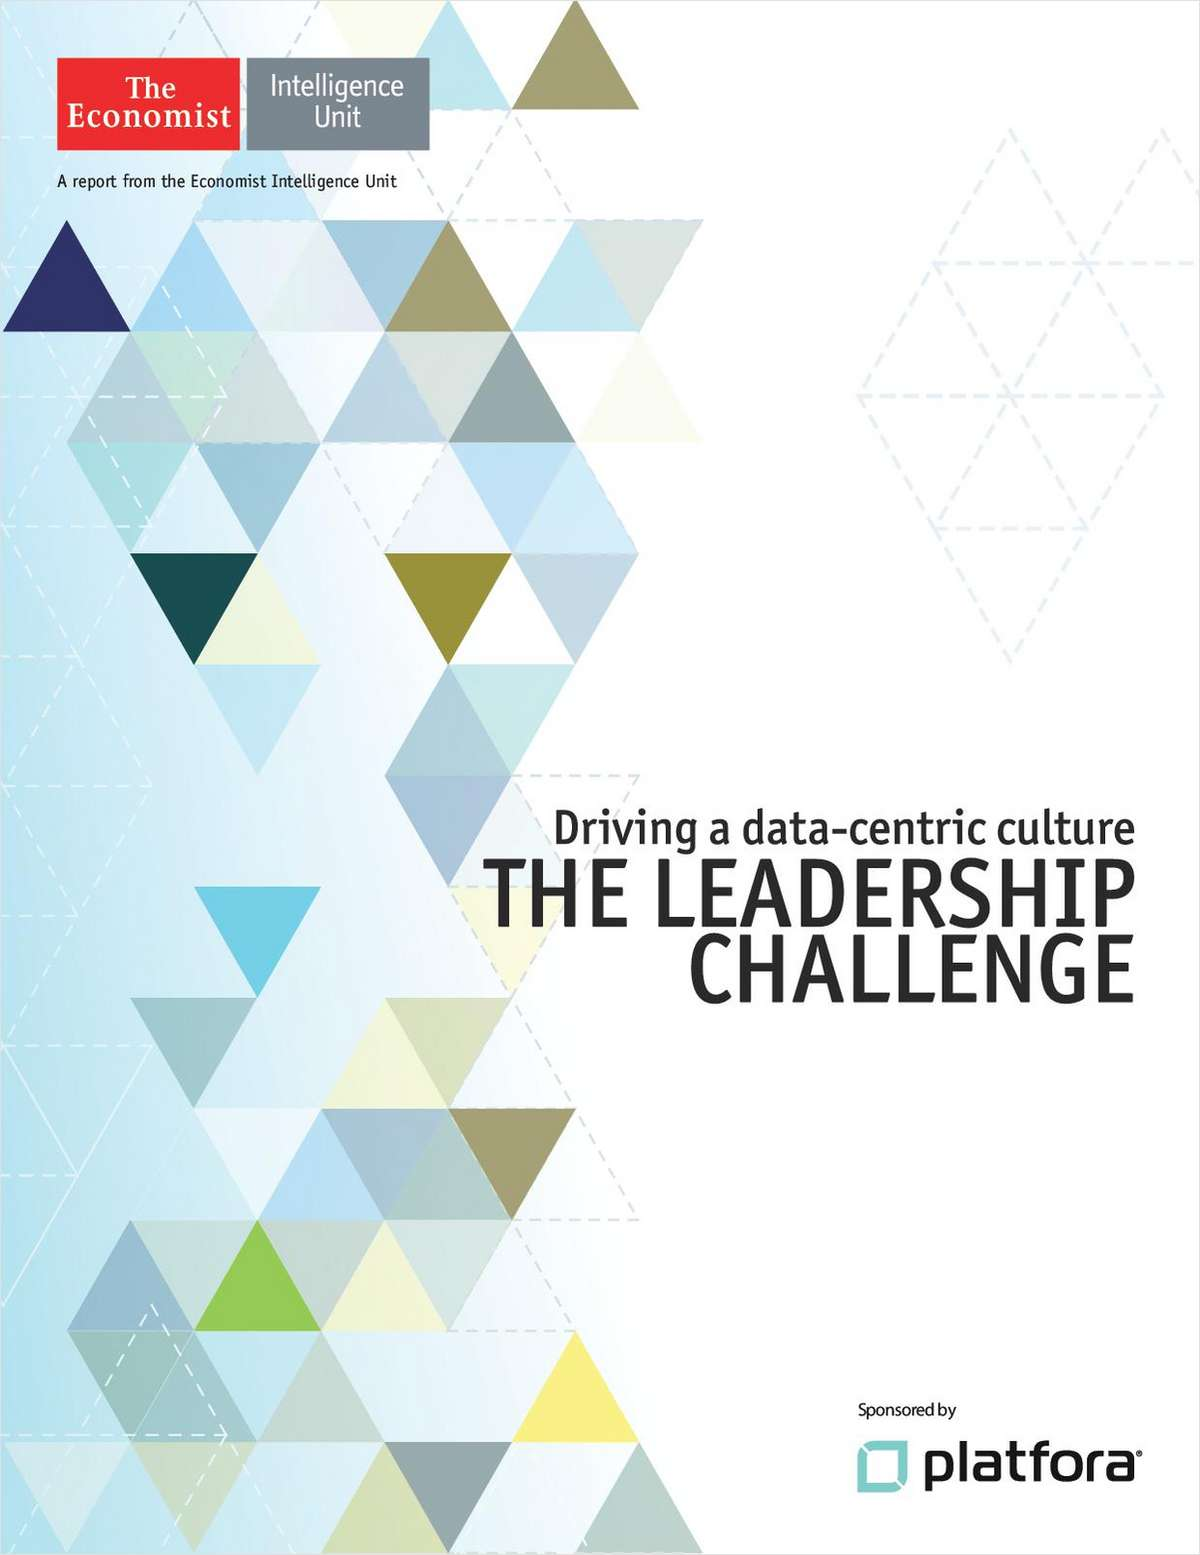 Driving a Data-centric Culture: The Leadership Challenge